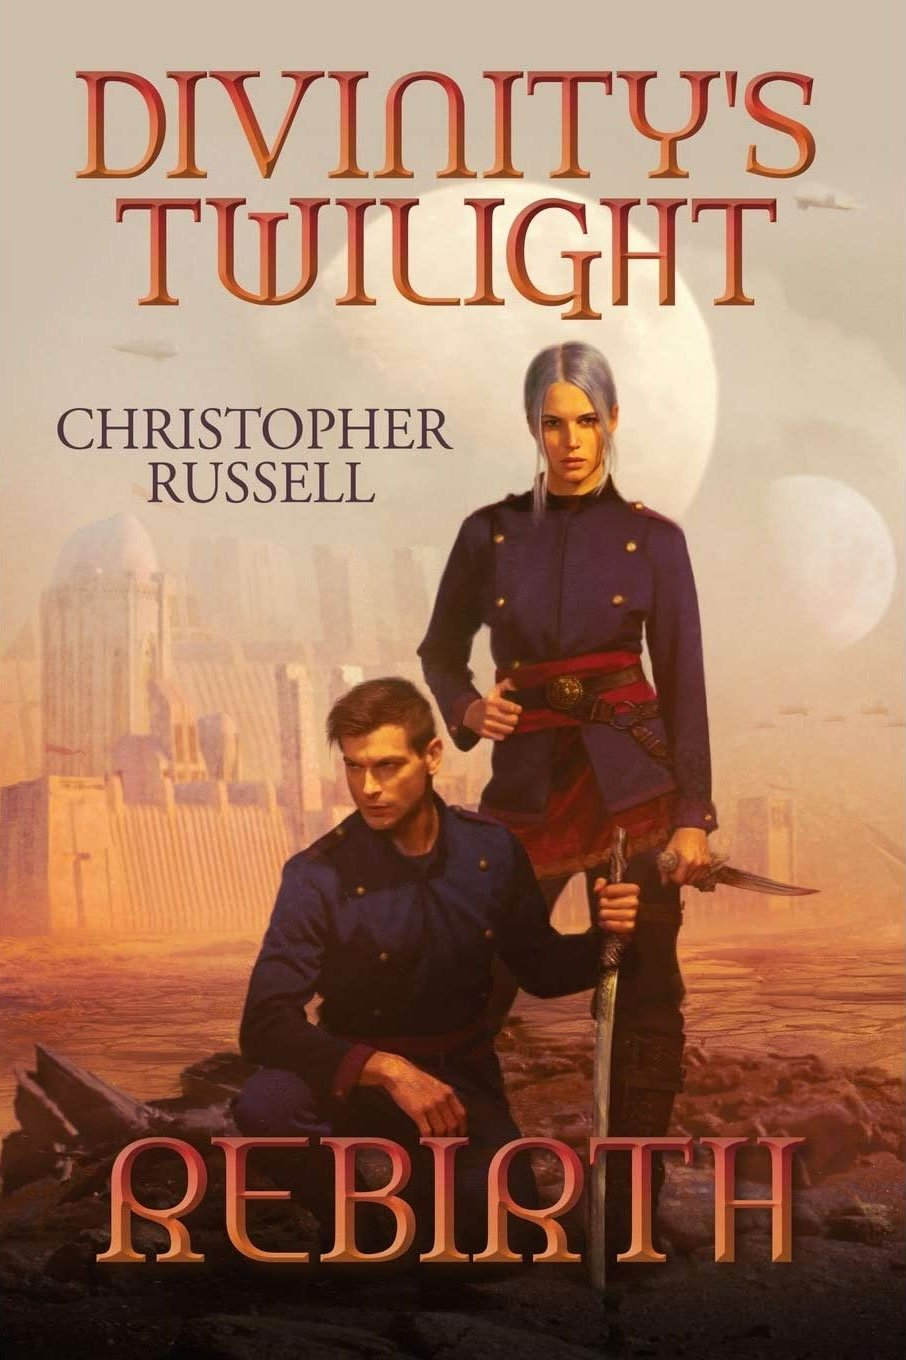 Divinity's Twilight: Rebirth by Christopher Russell